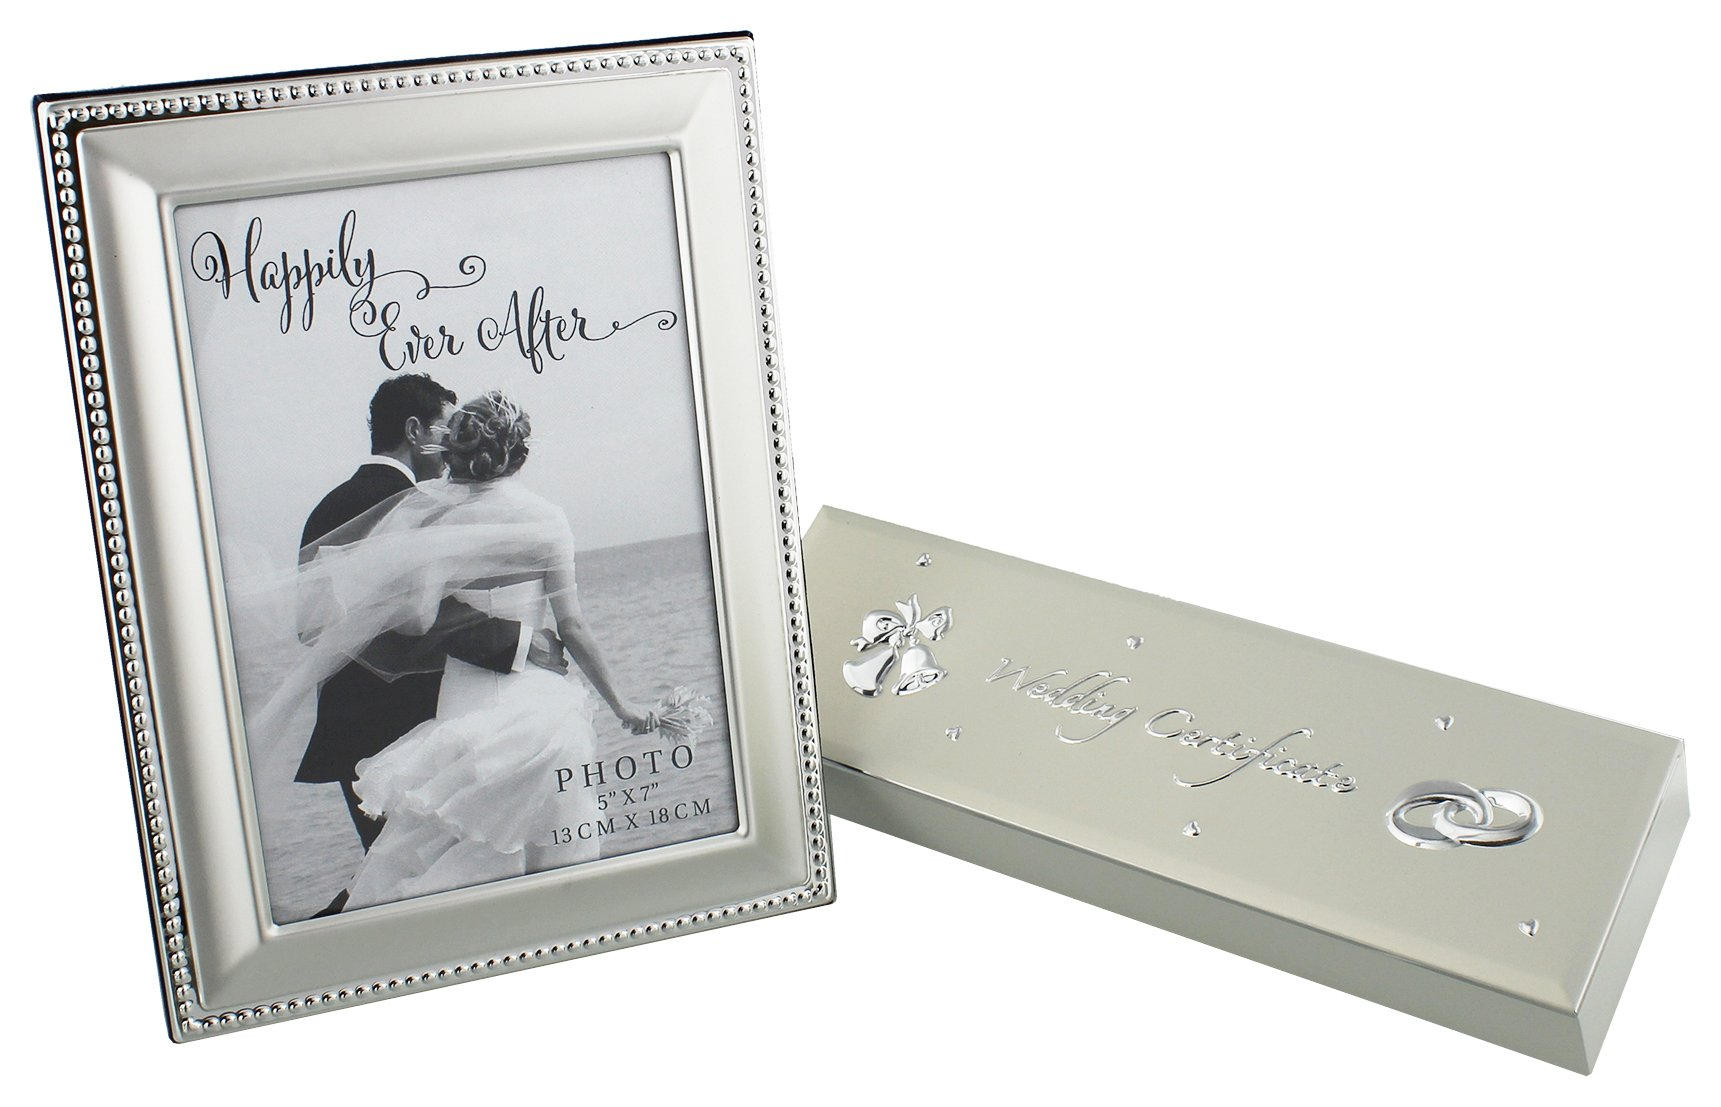 Image of Happily Ever After Silver Plated Frame/Certificate Holder